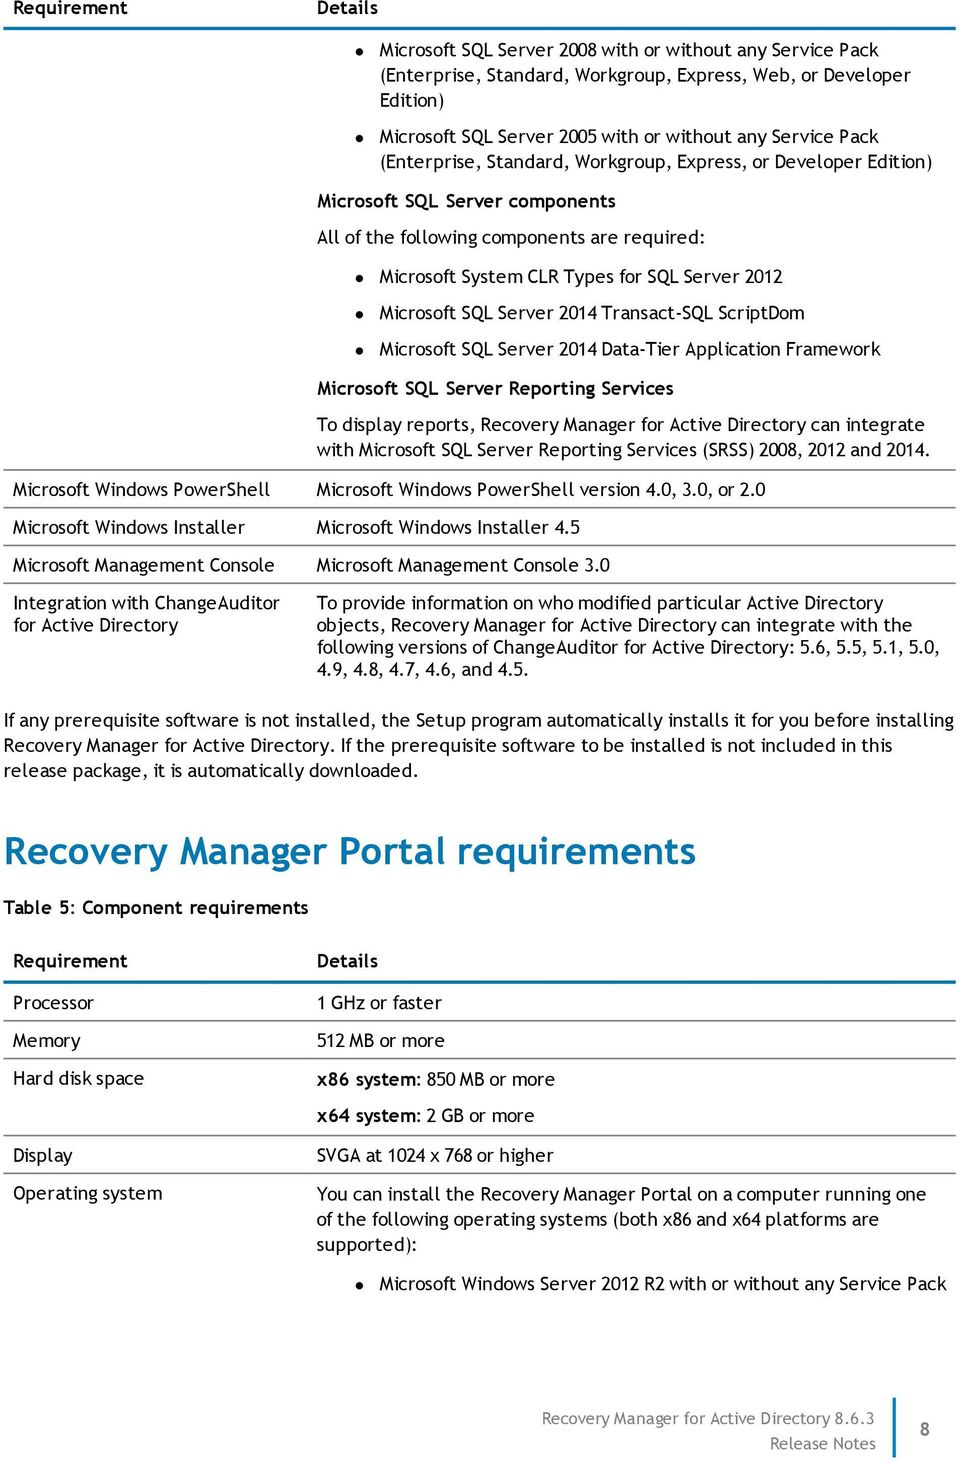 2012 Microsoft SQL Server 2014 Transact-SQL ScriptDom Microsoft SQL Server 2014 Data-Tier Application Framework Microsoft SQL Server Reporting Services To display reports, Recovery Manager for Active